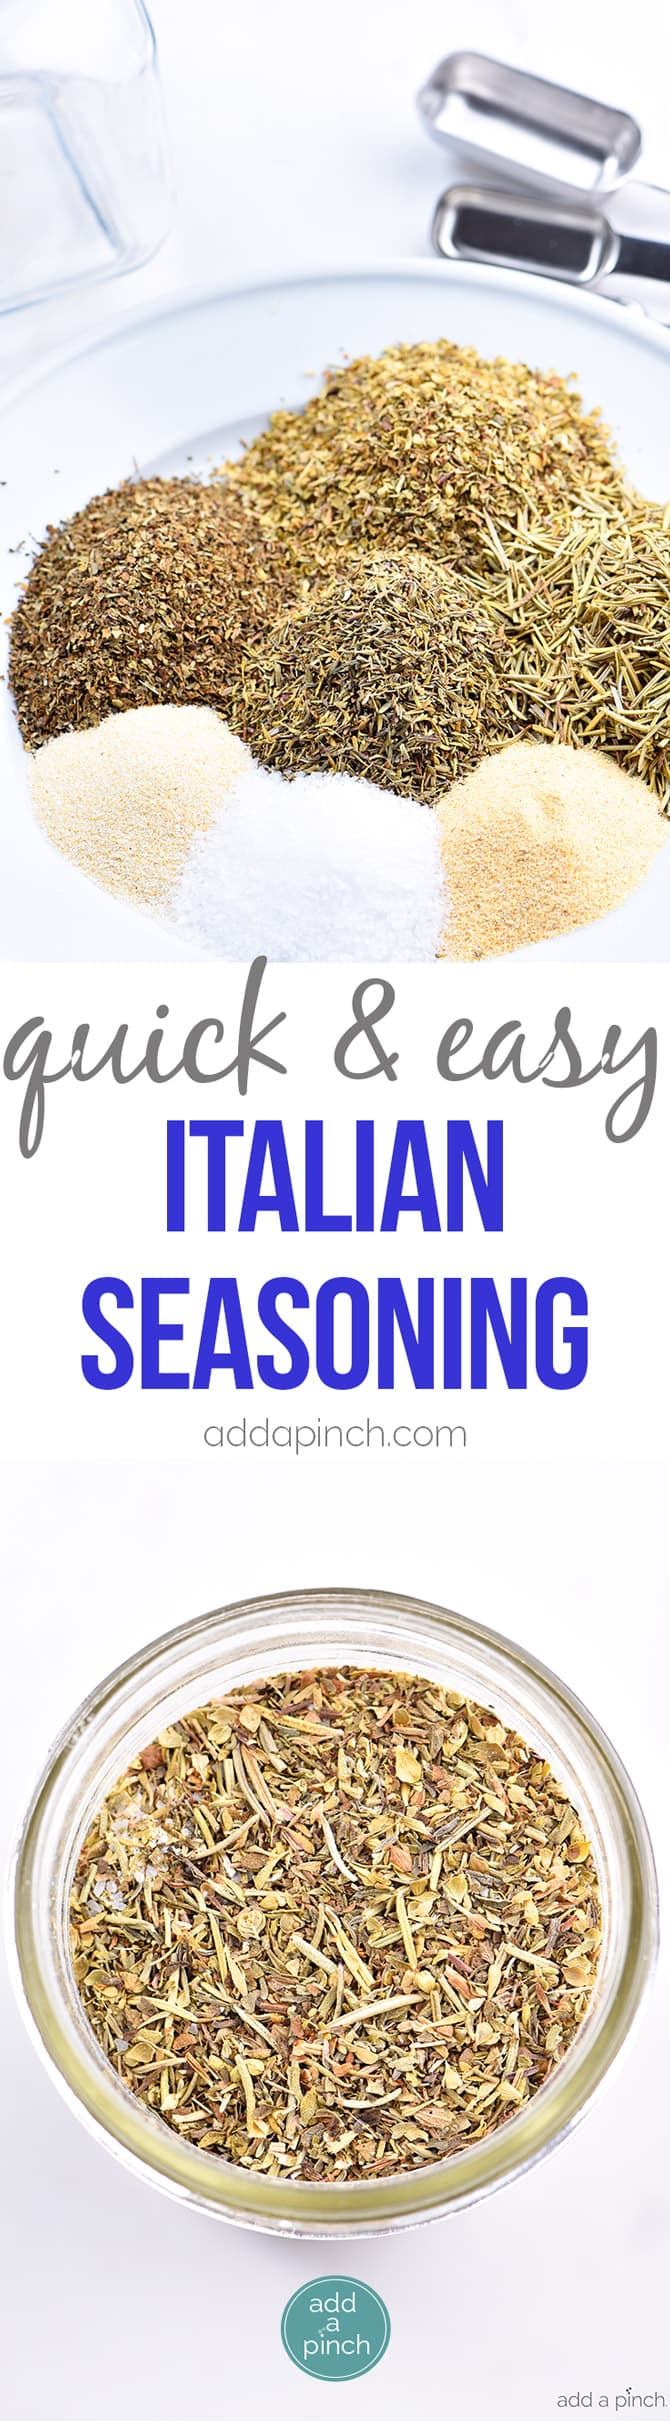 Italian Seasoning Mix Recipe - Italian Seasoning Mix makes a great seasoning mix to keep on hand in your pantry. A delicious savory addition to so many Italian dishes from spaghetti to lasagna or to sprinkle on chicken! It is an essential! addapinch.com